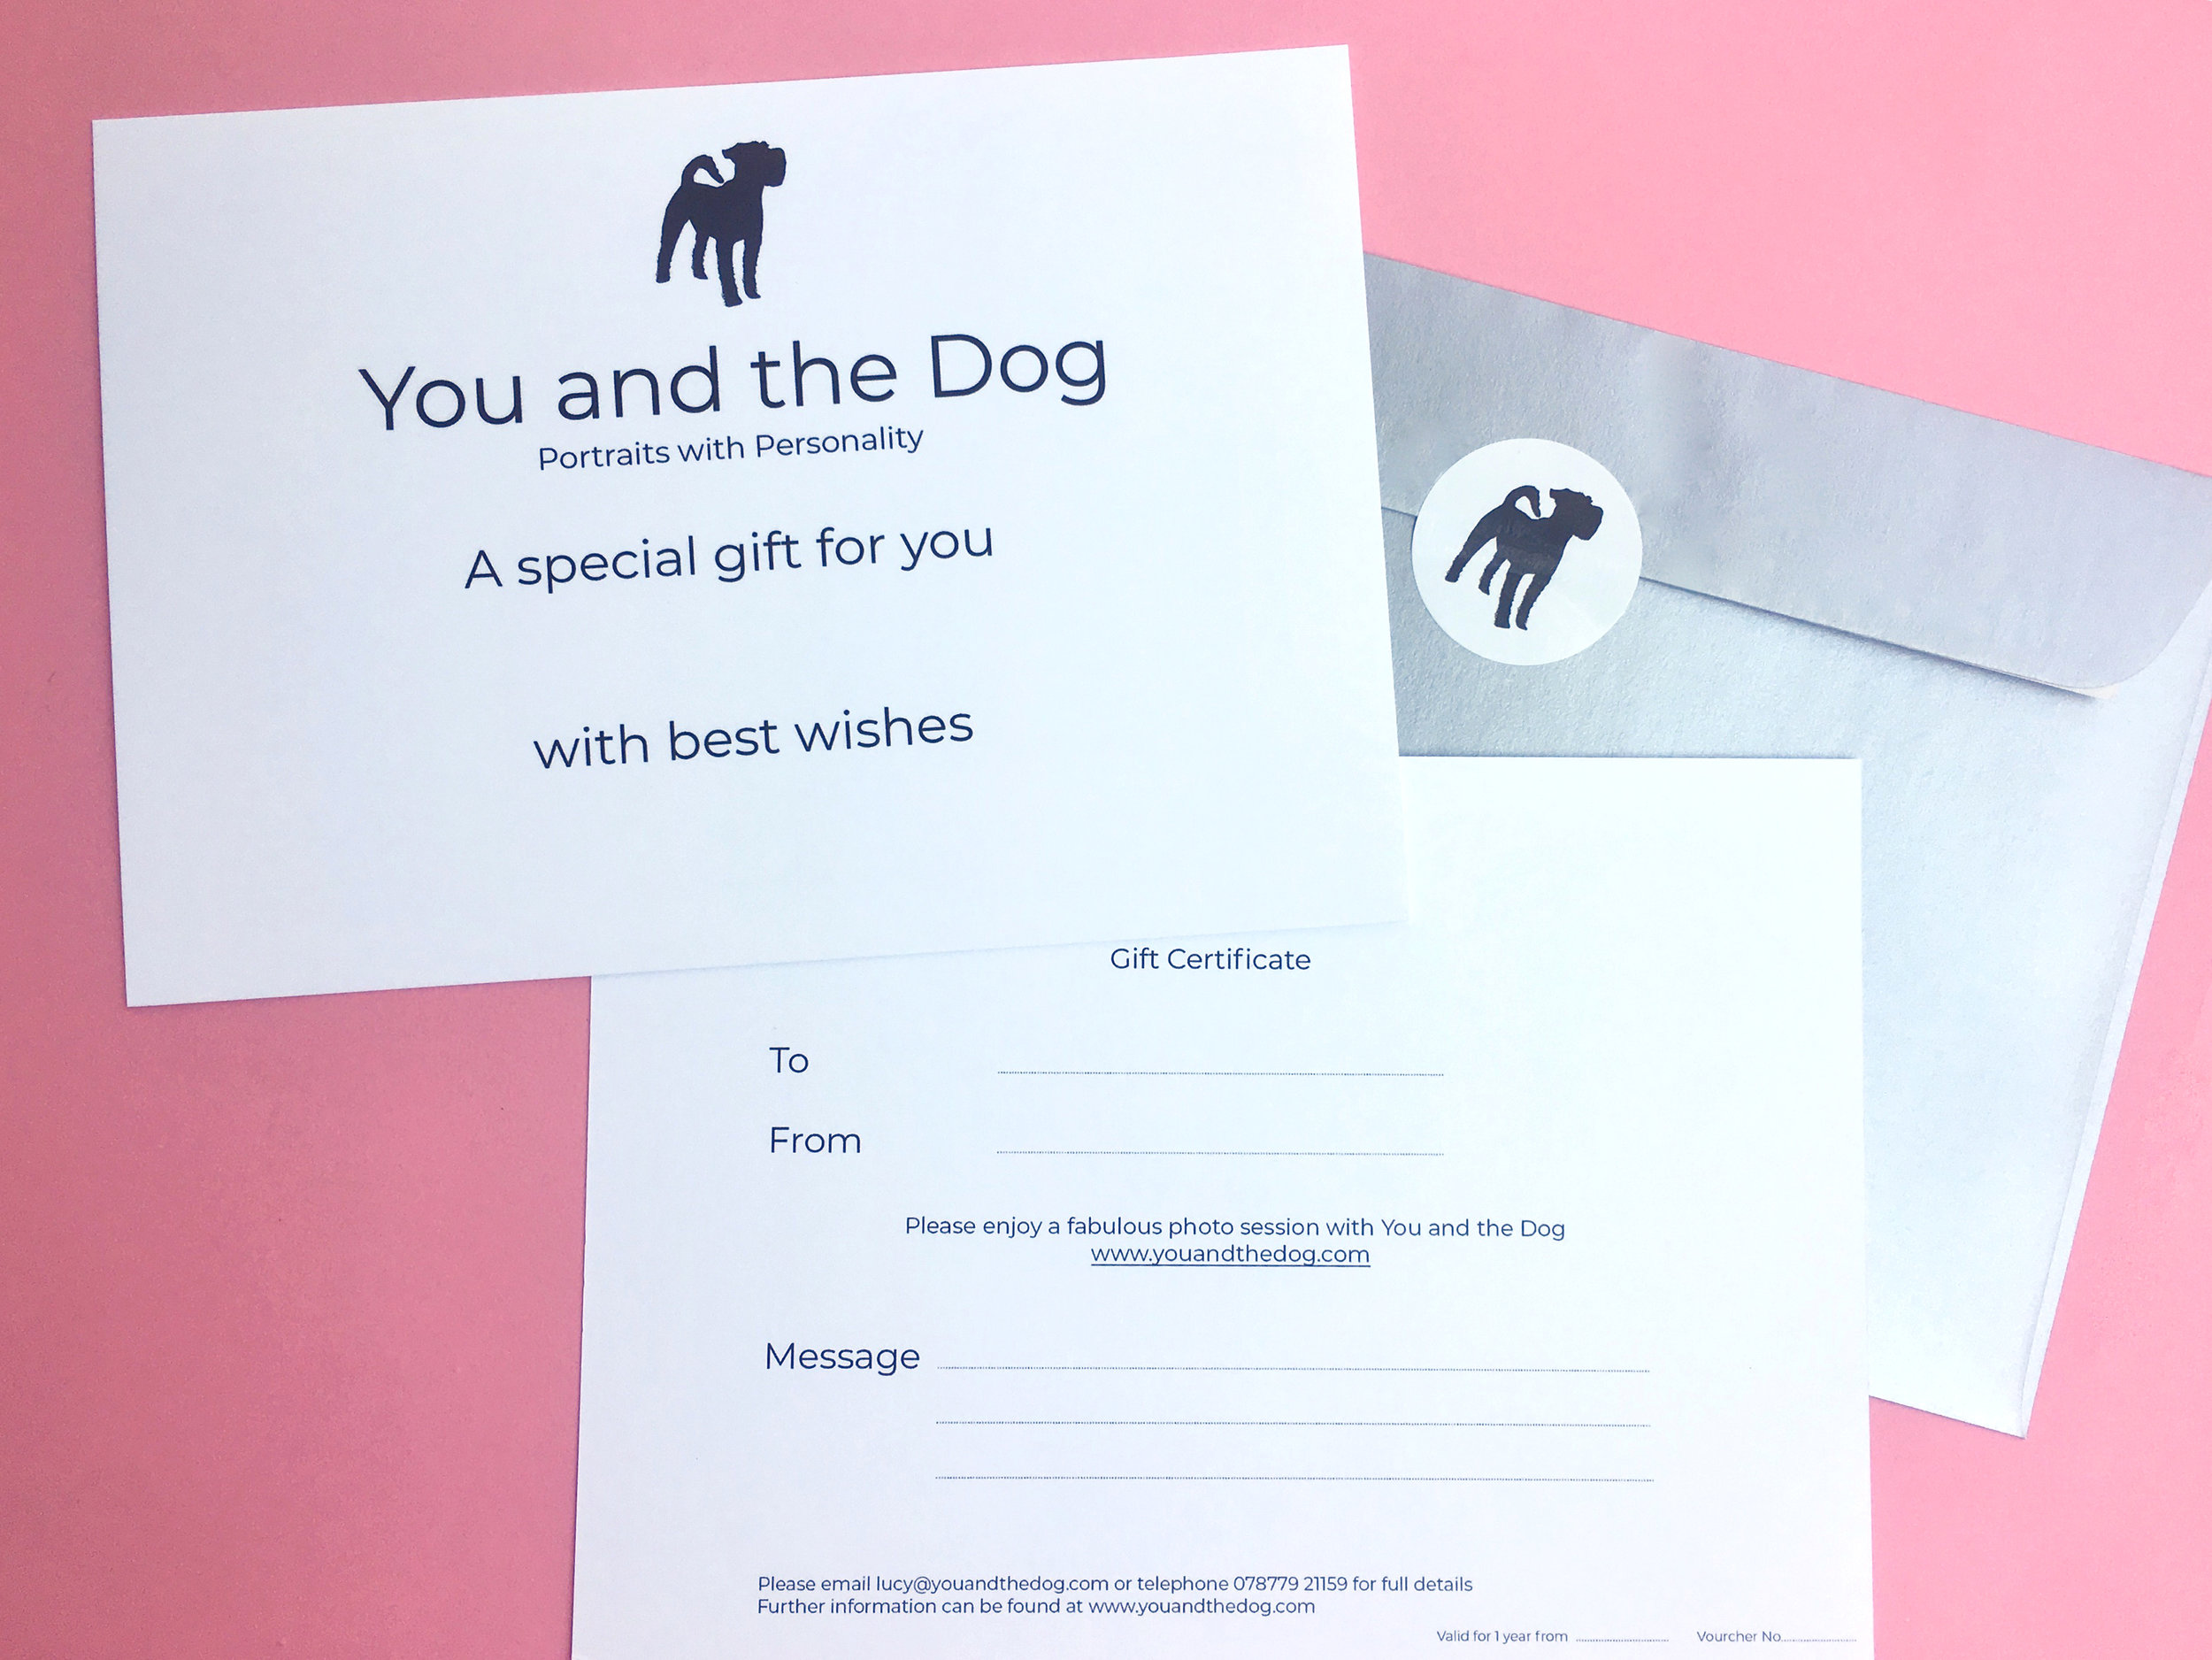 Gift vouchers - Why not treat the dog lover in your life to a studio session for their dog? Gift vouchers make an ideal present.